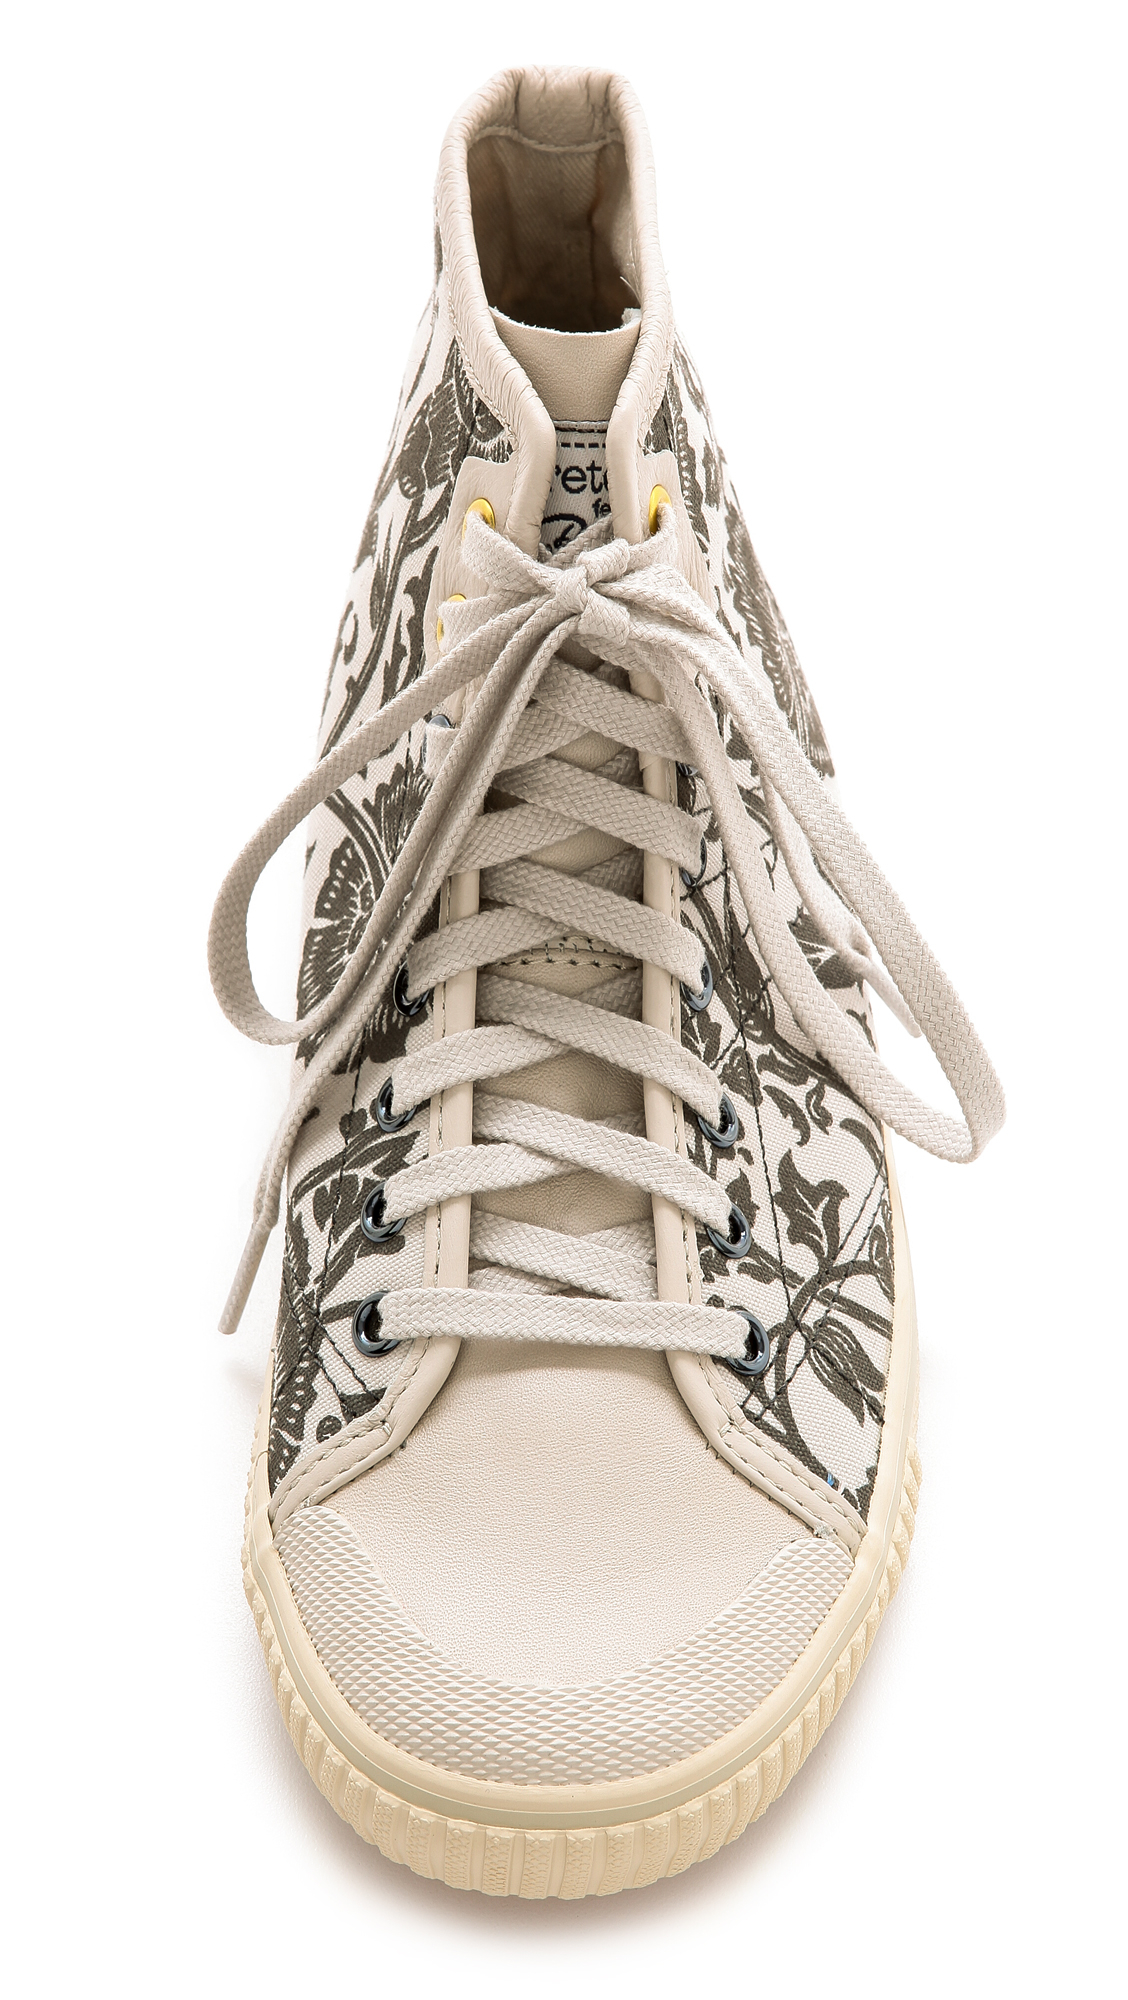 Tretorn Seksti William Morris High Top Sneakers Moonbeam